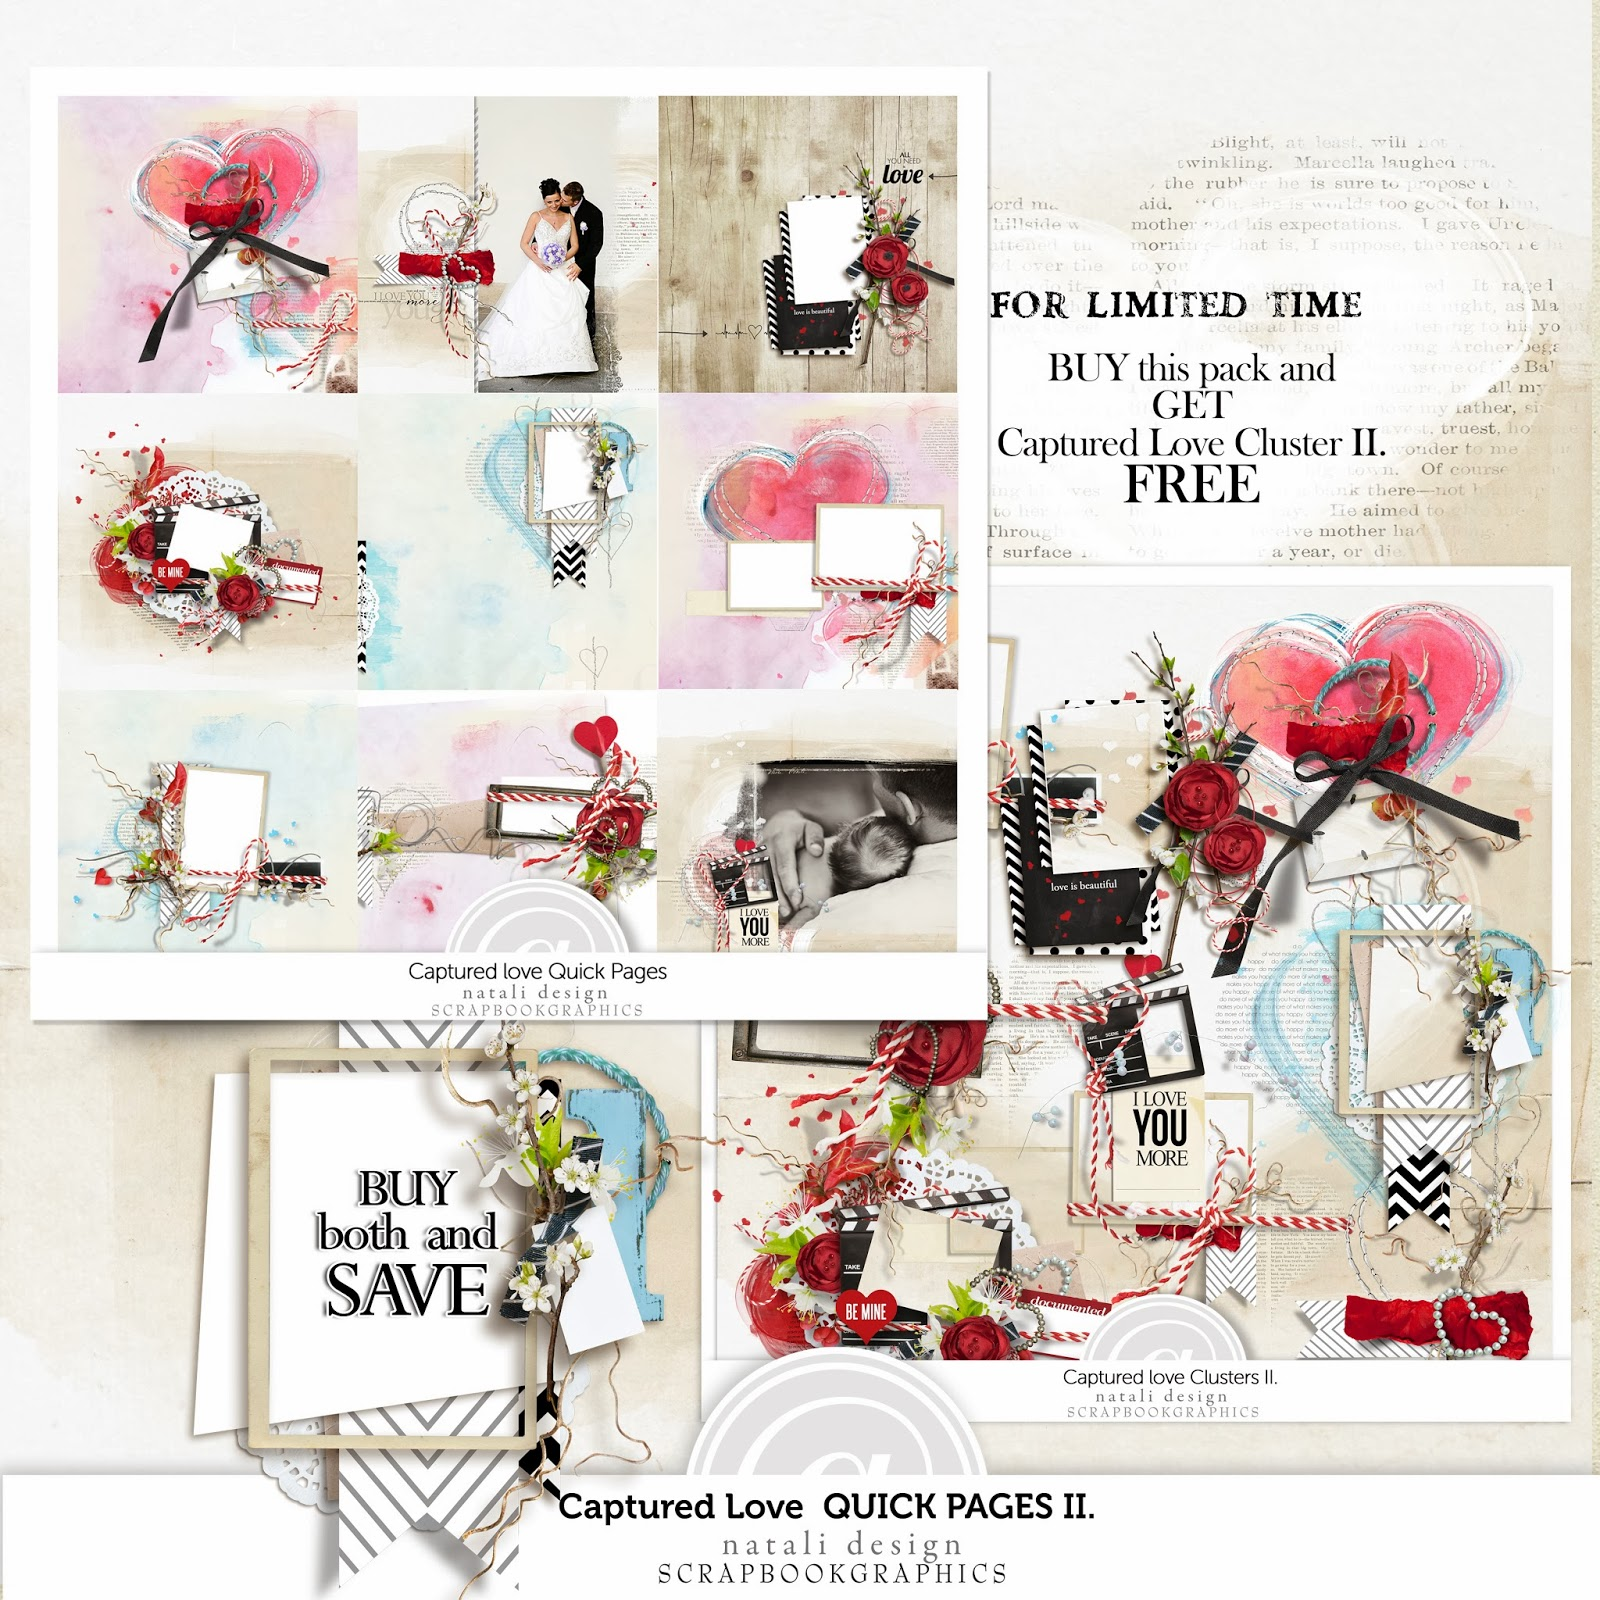 http://shop.scrapbookgraphics.com/Captured-Love-Quick-Pages-2.html